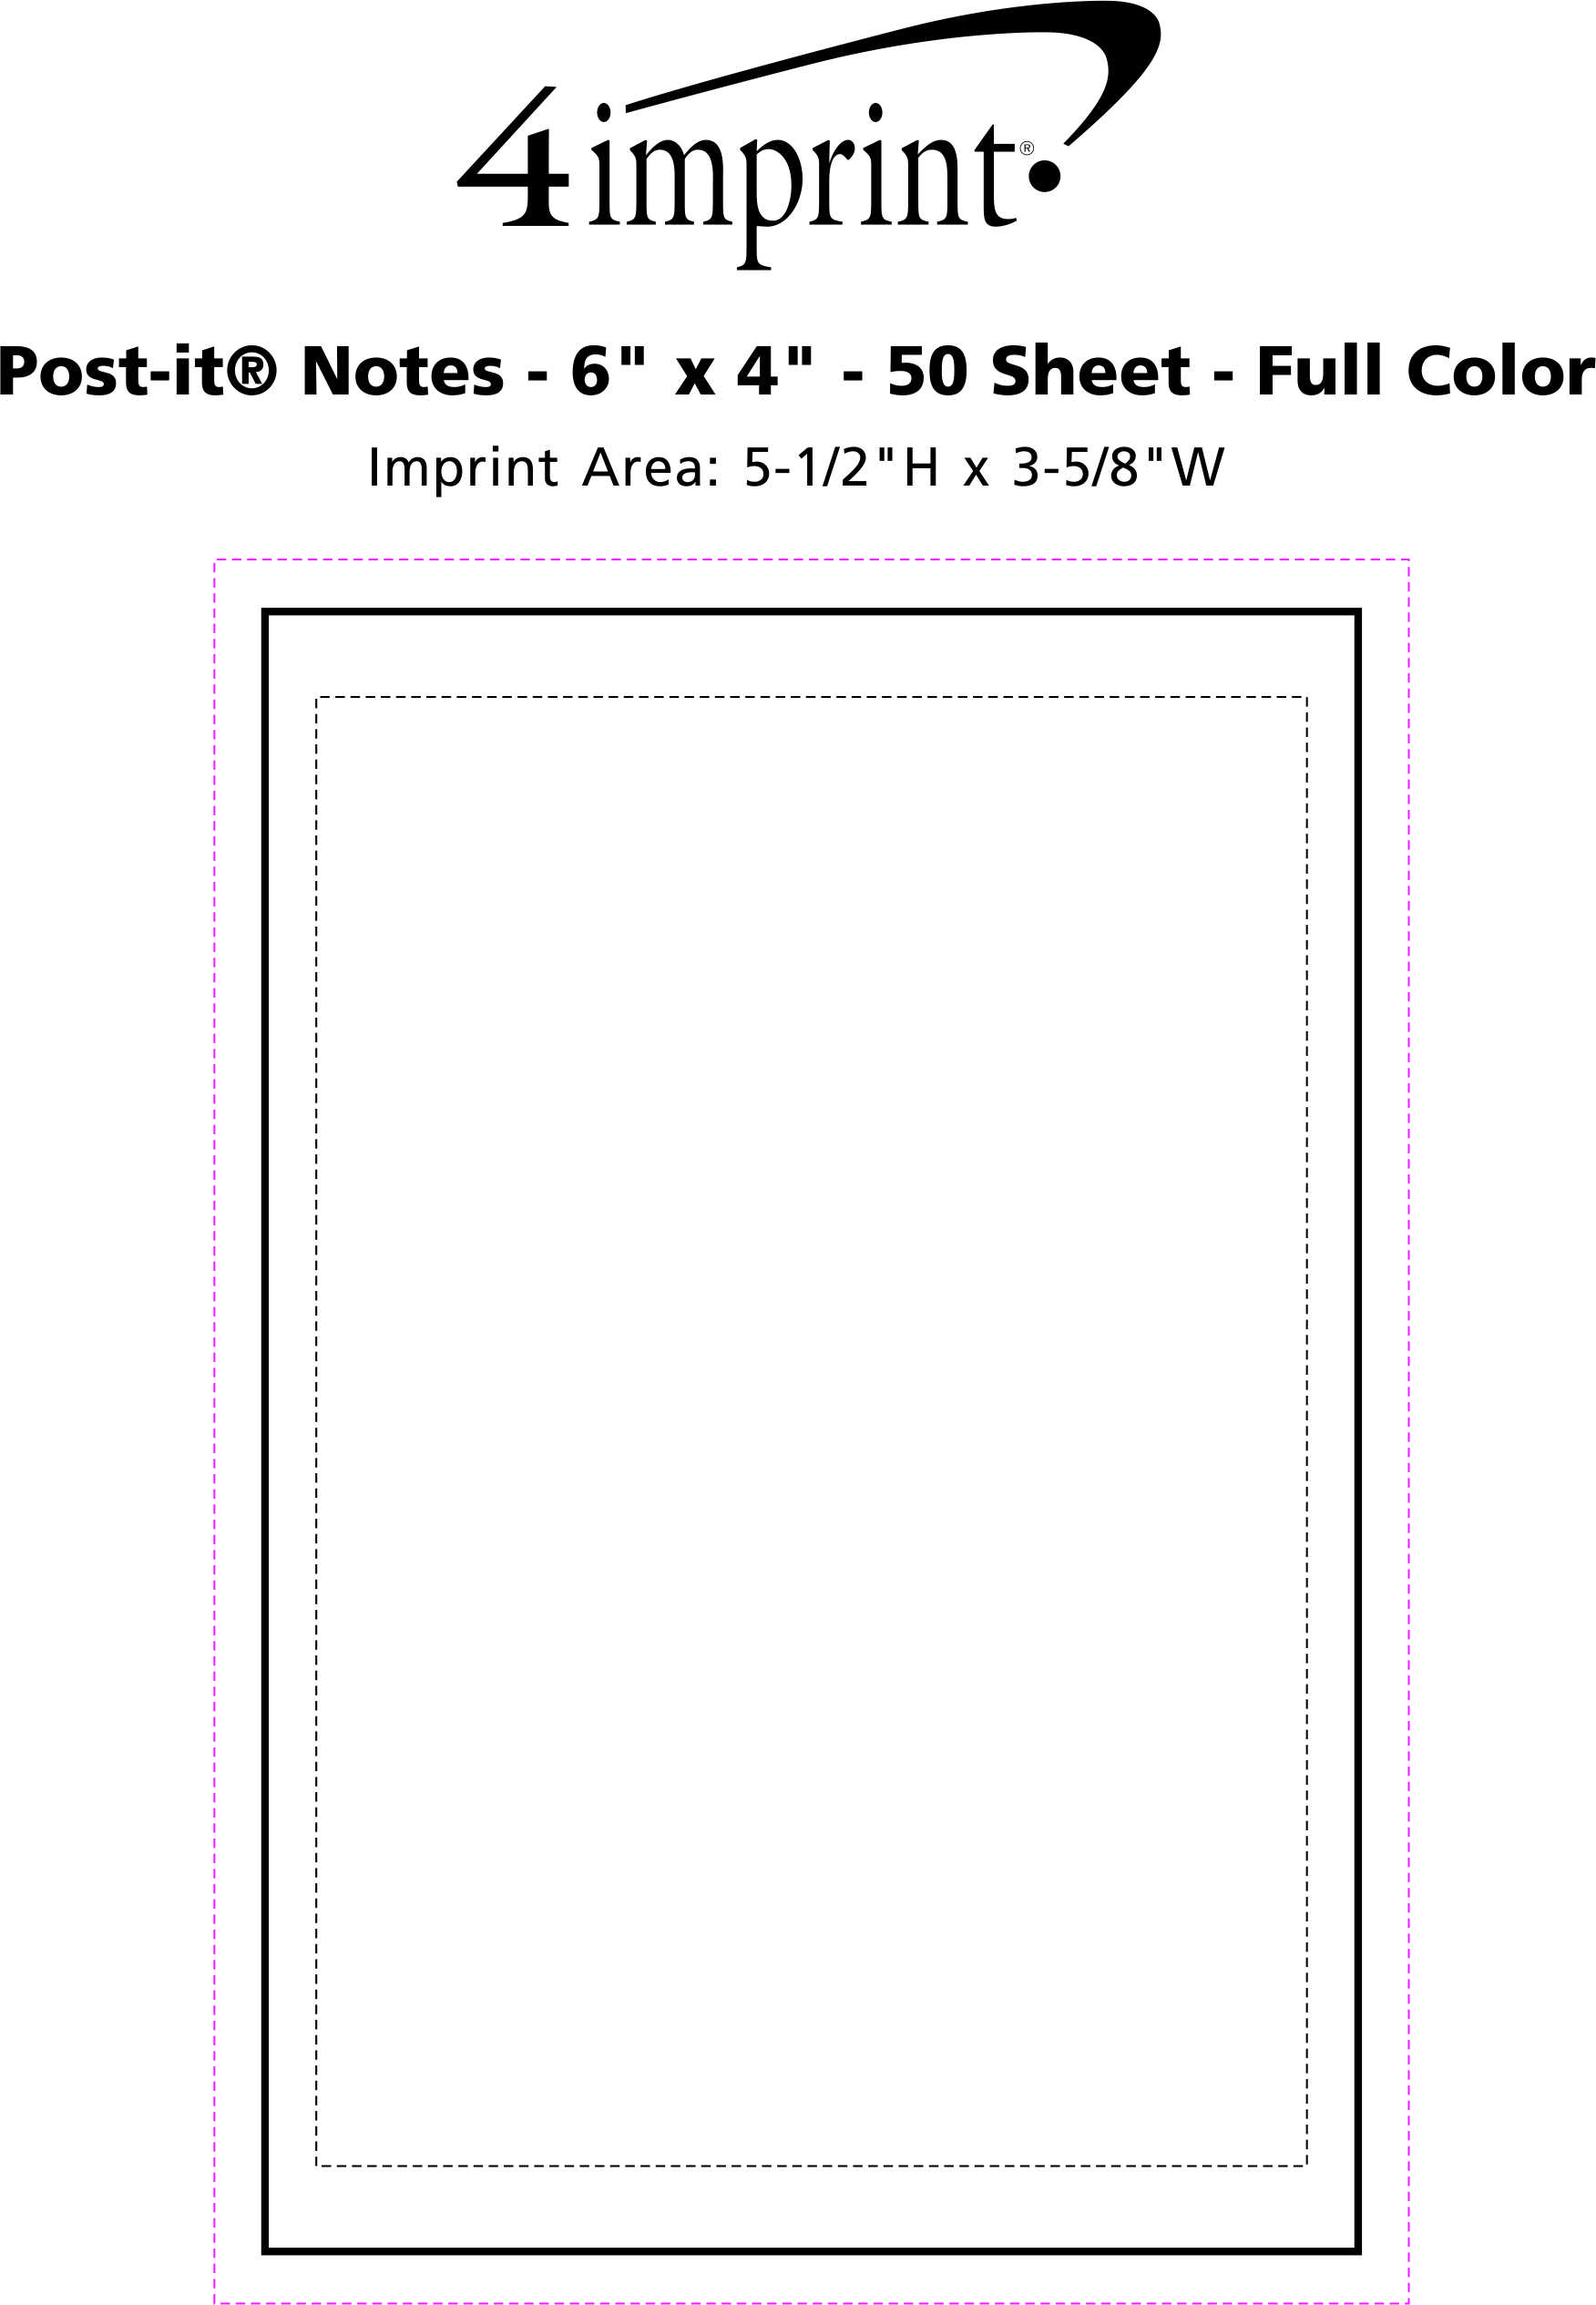 """Imprint Area of Post-it® Notes - 6"""" x 4"""" - 50 Sheet - Full Color"""